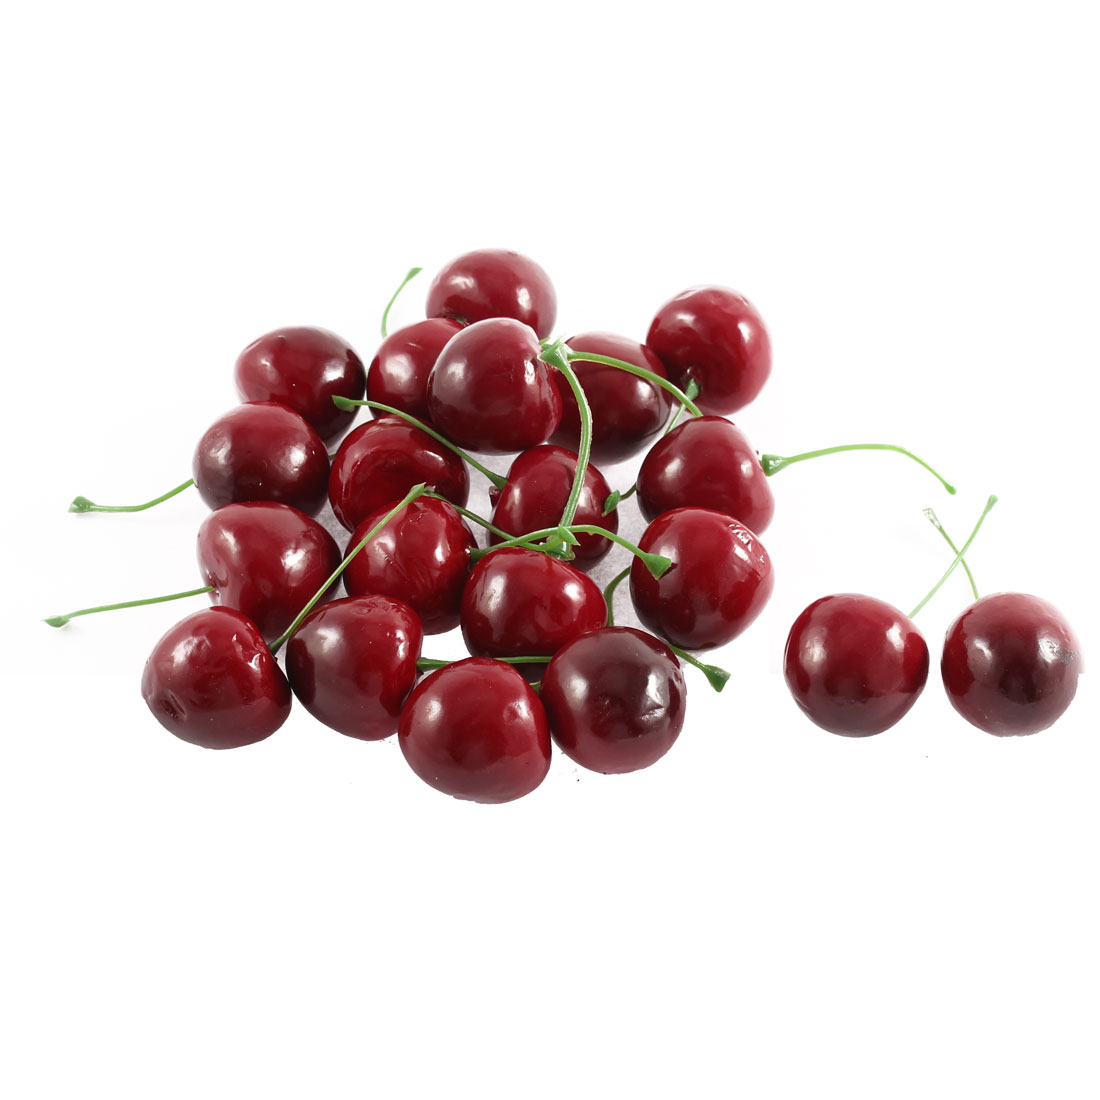 Unique Bargains 20 Pcs Artificial Fake Plastic Cherry Party Table Fruit Food Ornament Red Green for Home Essential